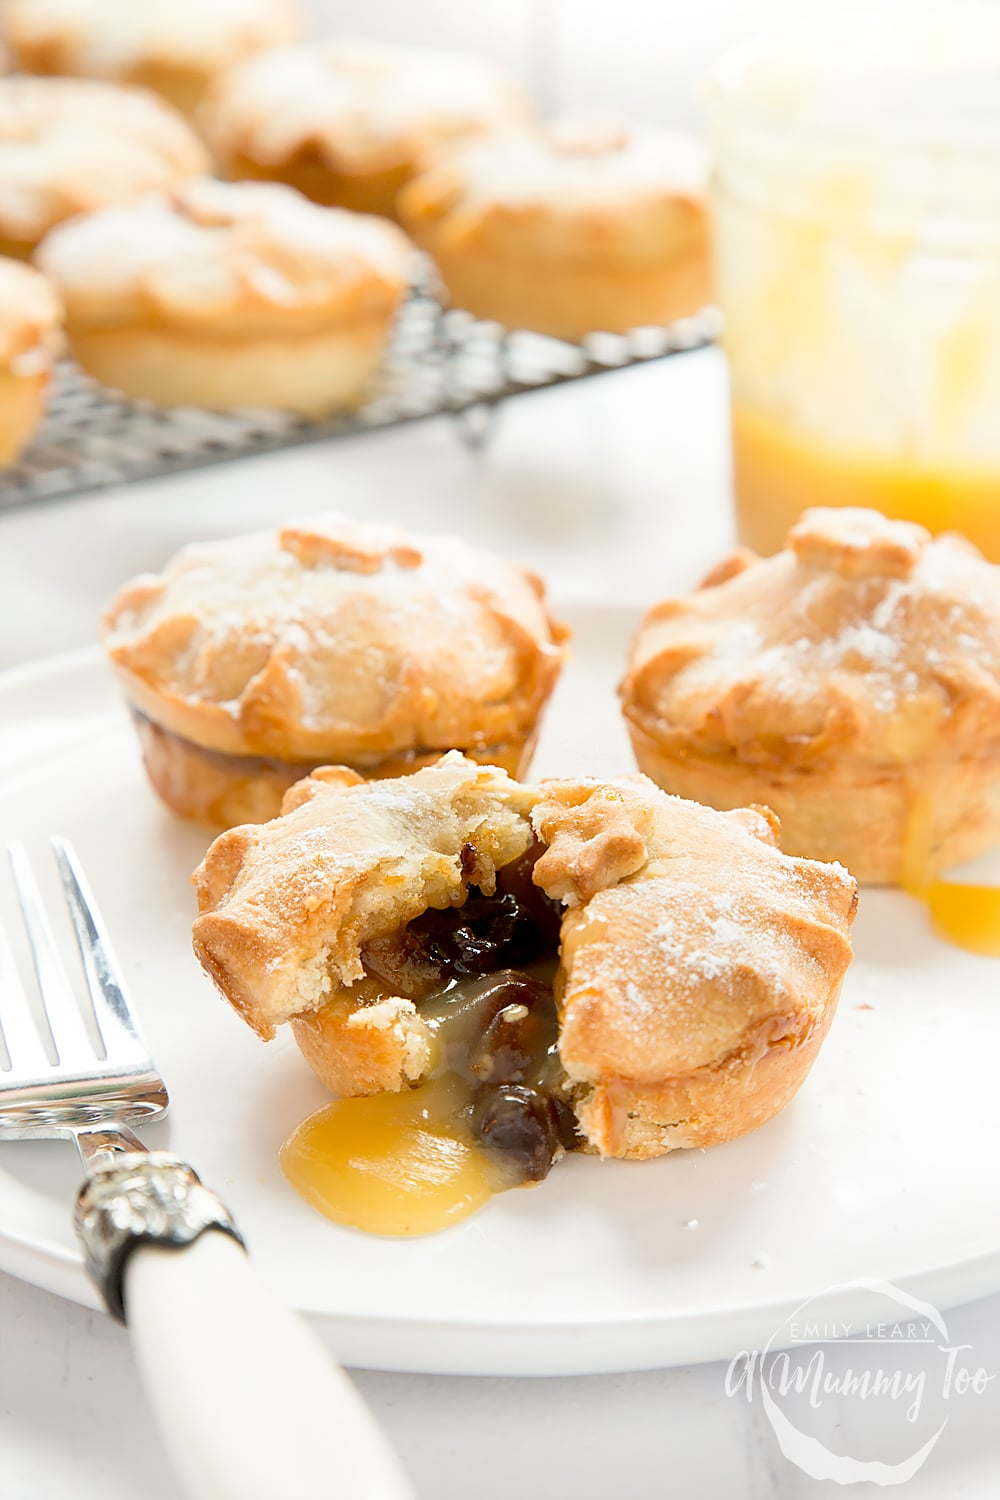 These salted caramel mince pies are a deliciously sweet and salted take on the traditional mince pie